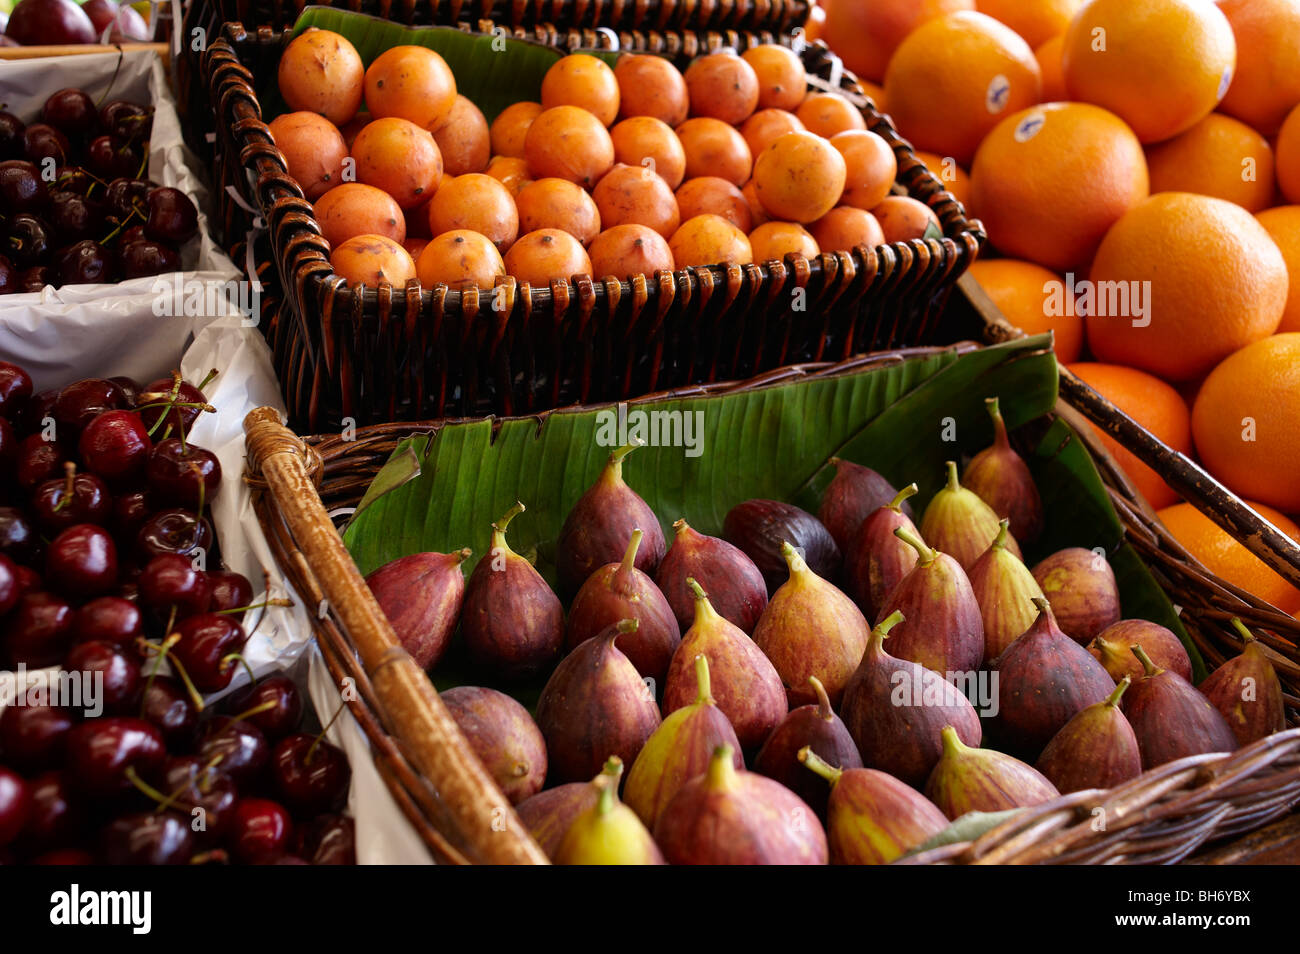 Exotic tropical fruits at greengrocer's - Stock Image